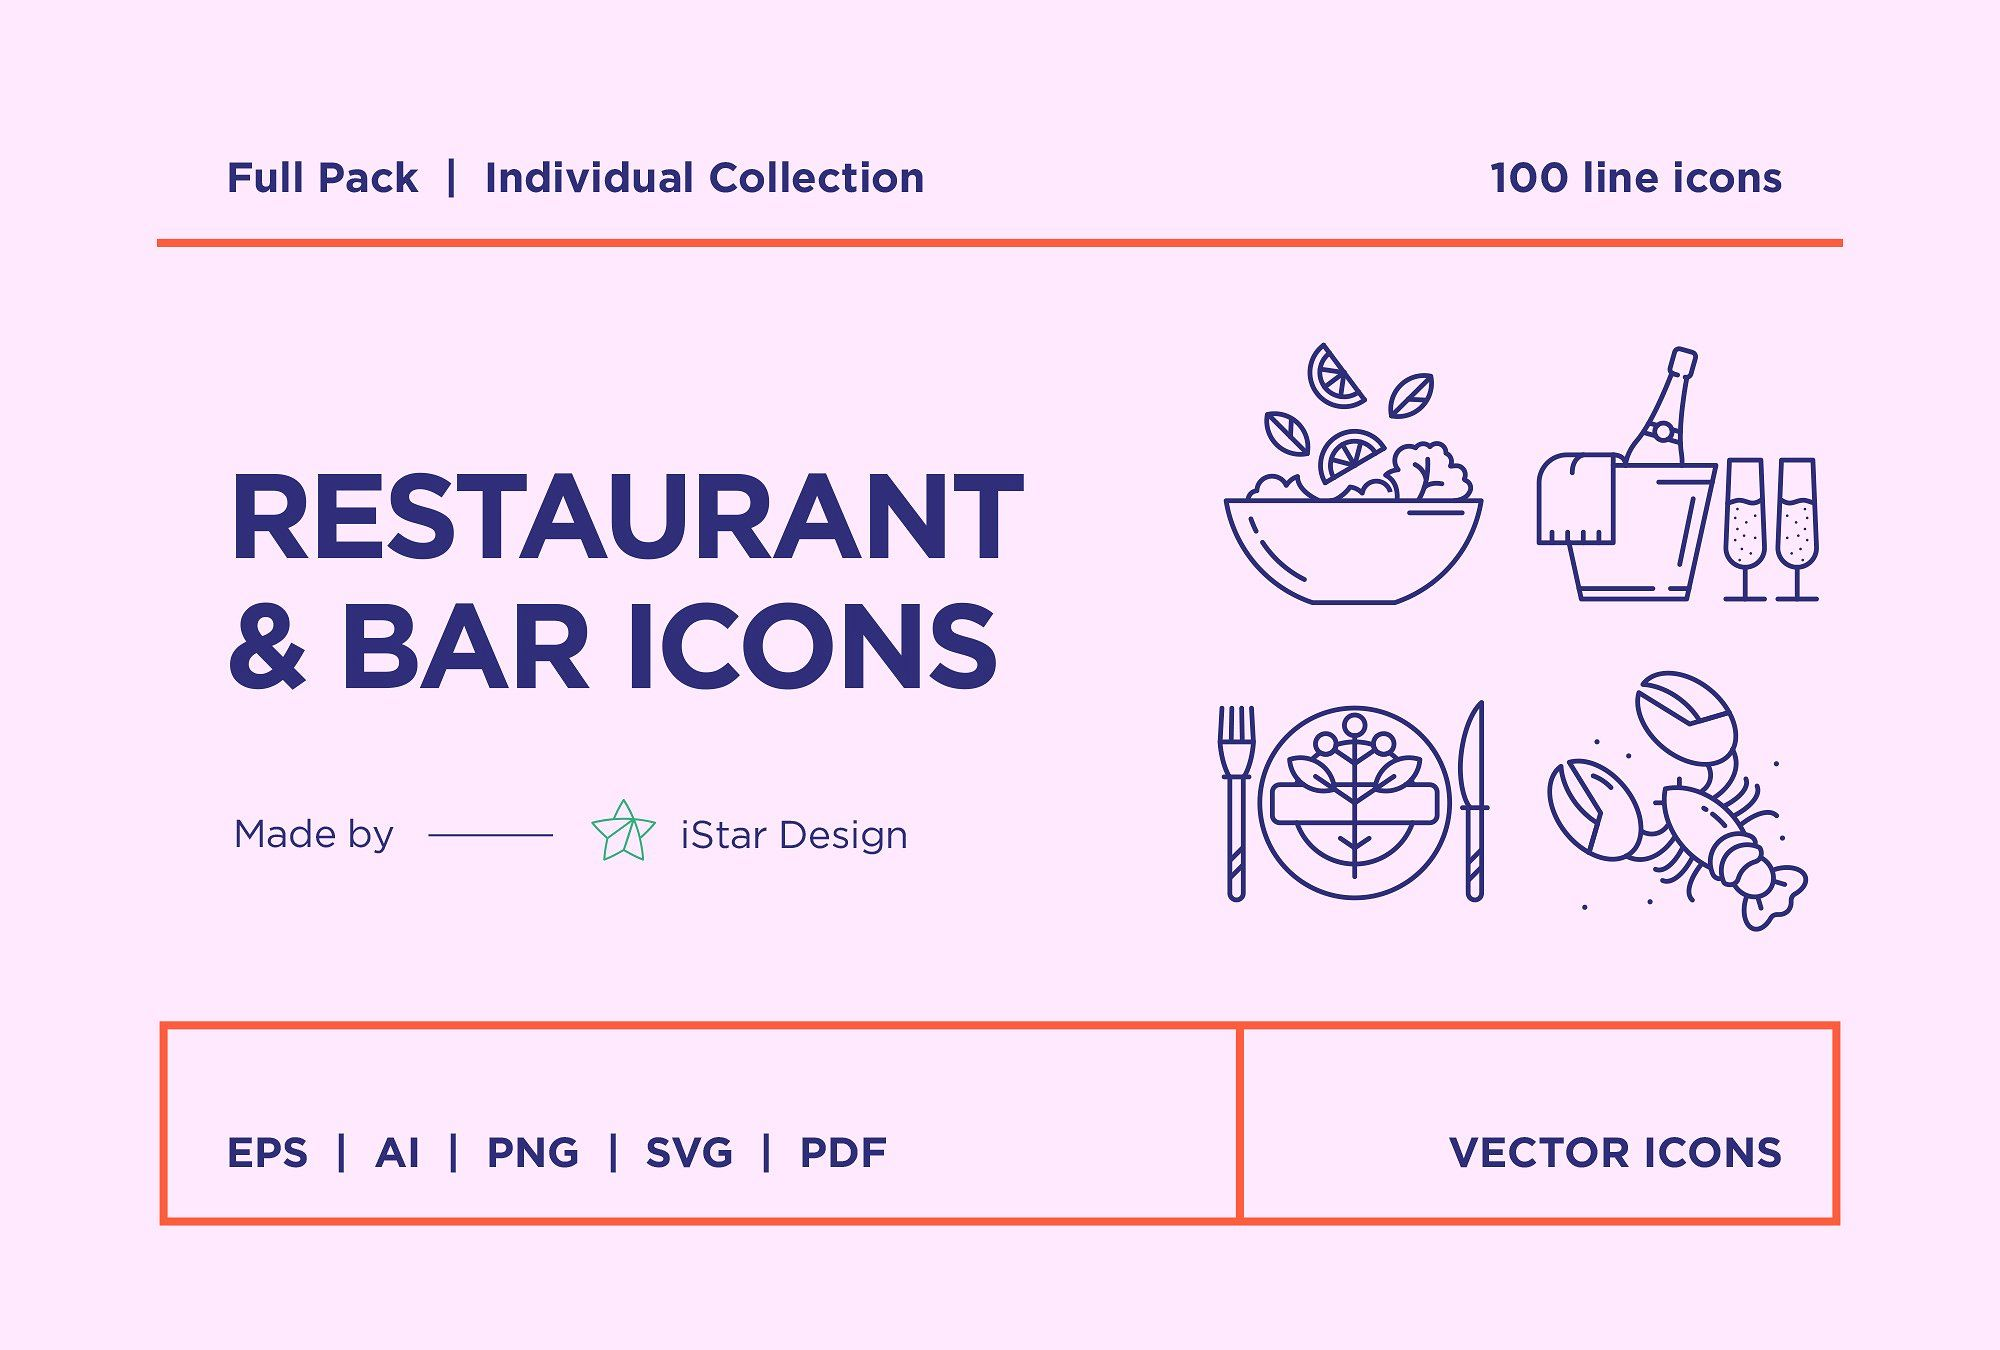 Food & Drinks Icons Set icon, flaticon, icons, icon pack